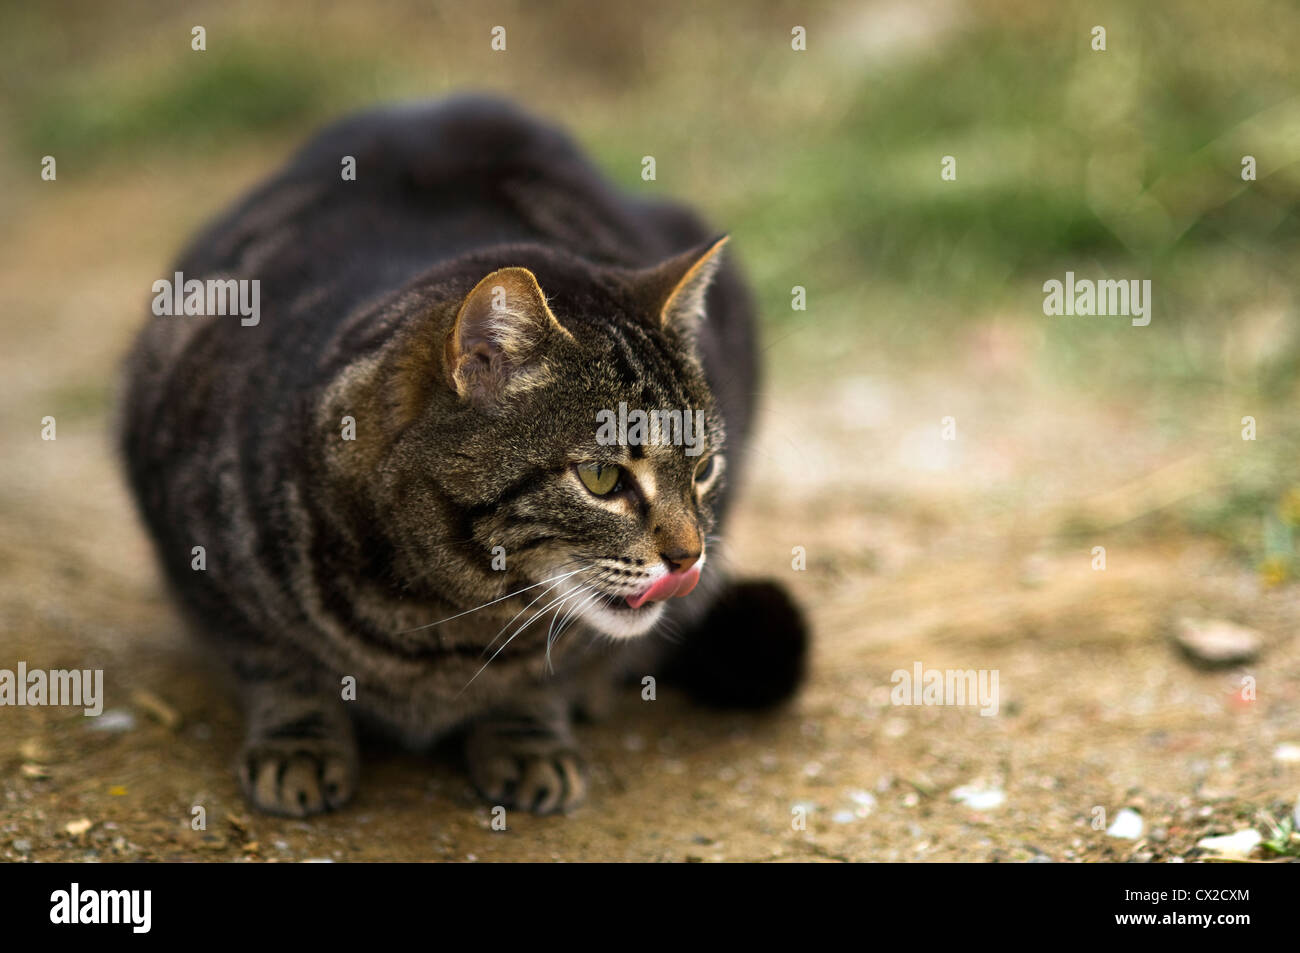 A lurking cat - Stock Image